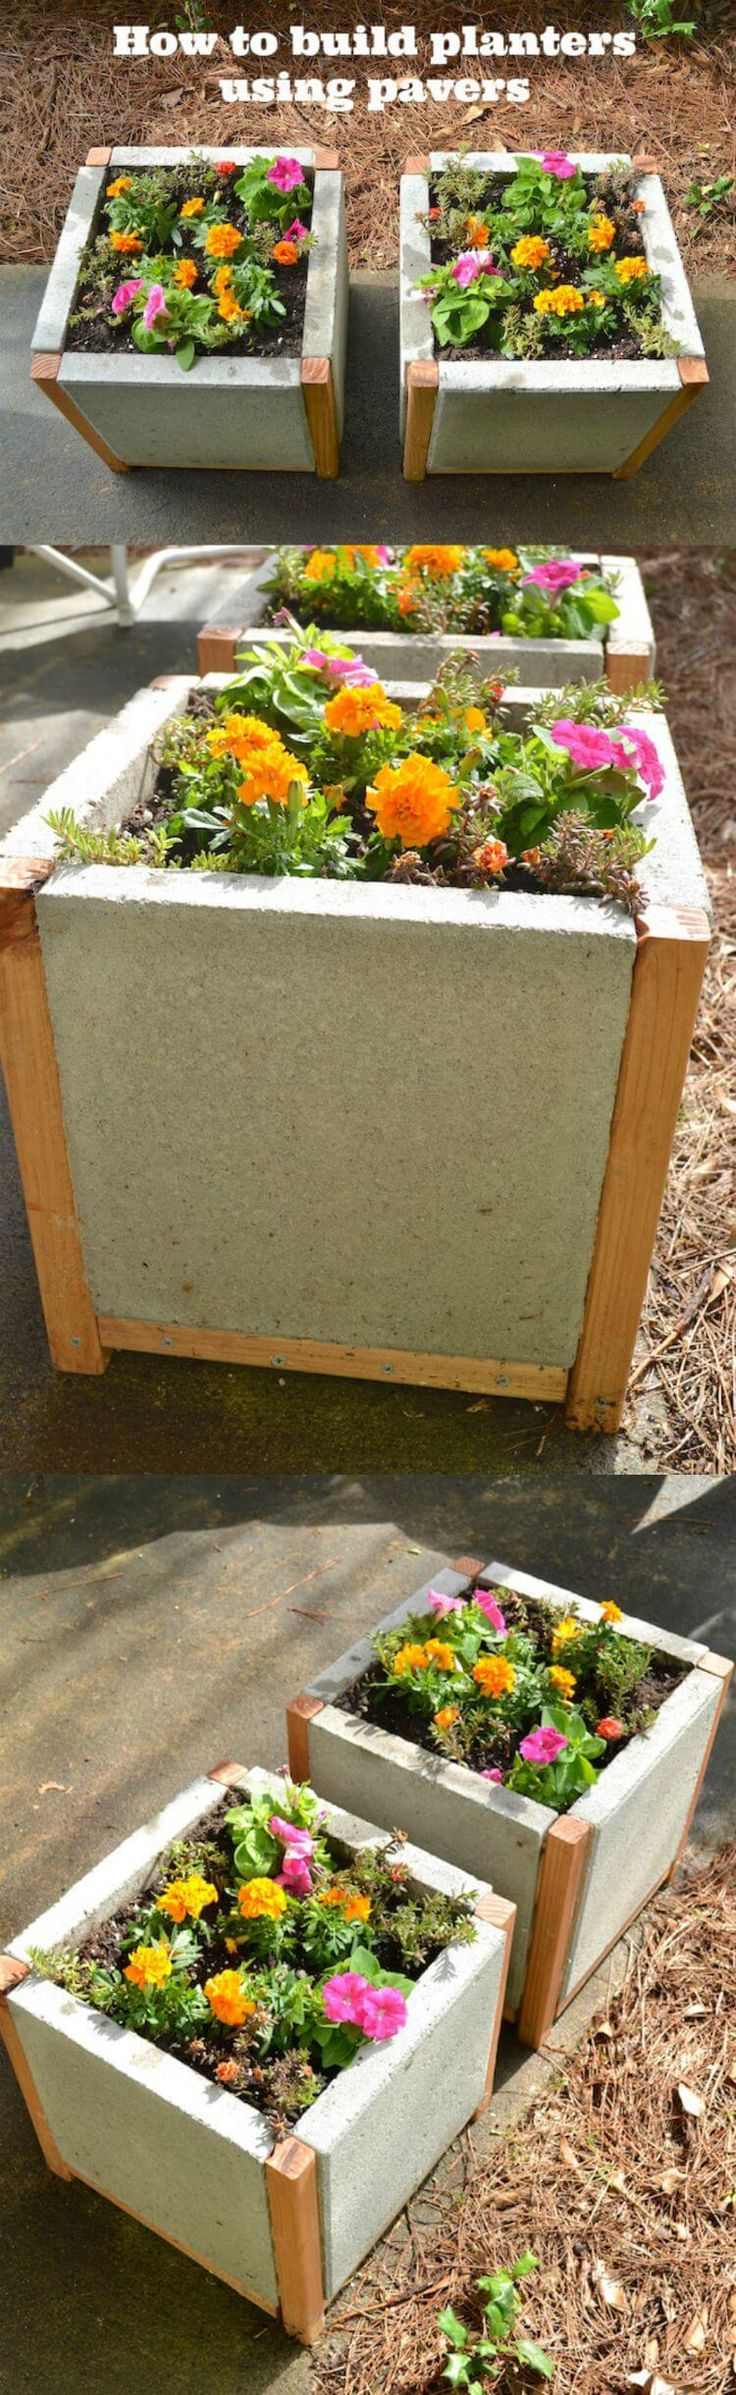 Make a paver planter! DIY plant boxes with a modern look are easy and inexpensive to make with square concrete pavers and adhesive. via @modpodgerocks